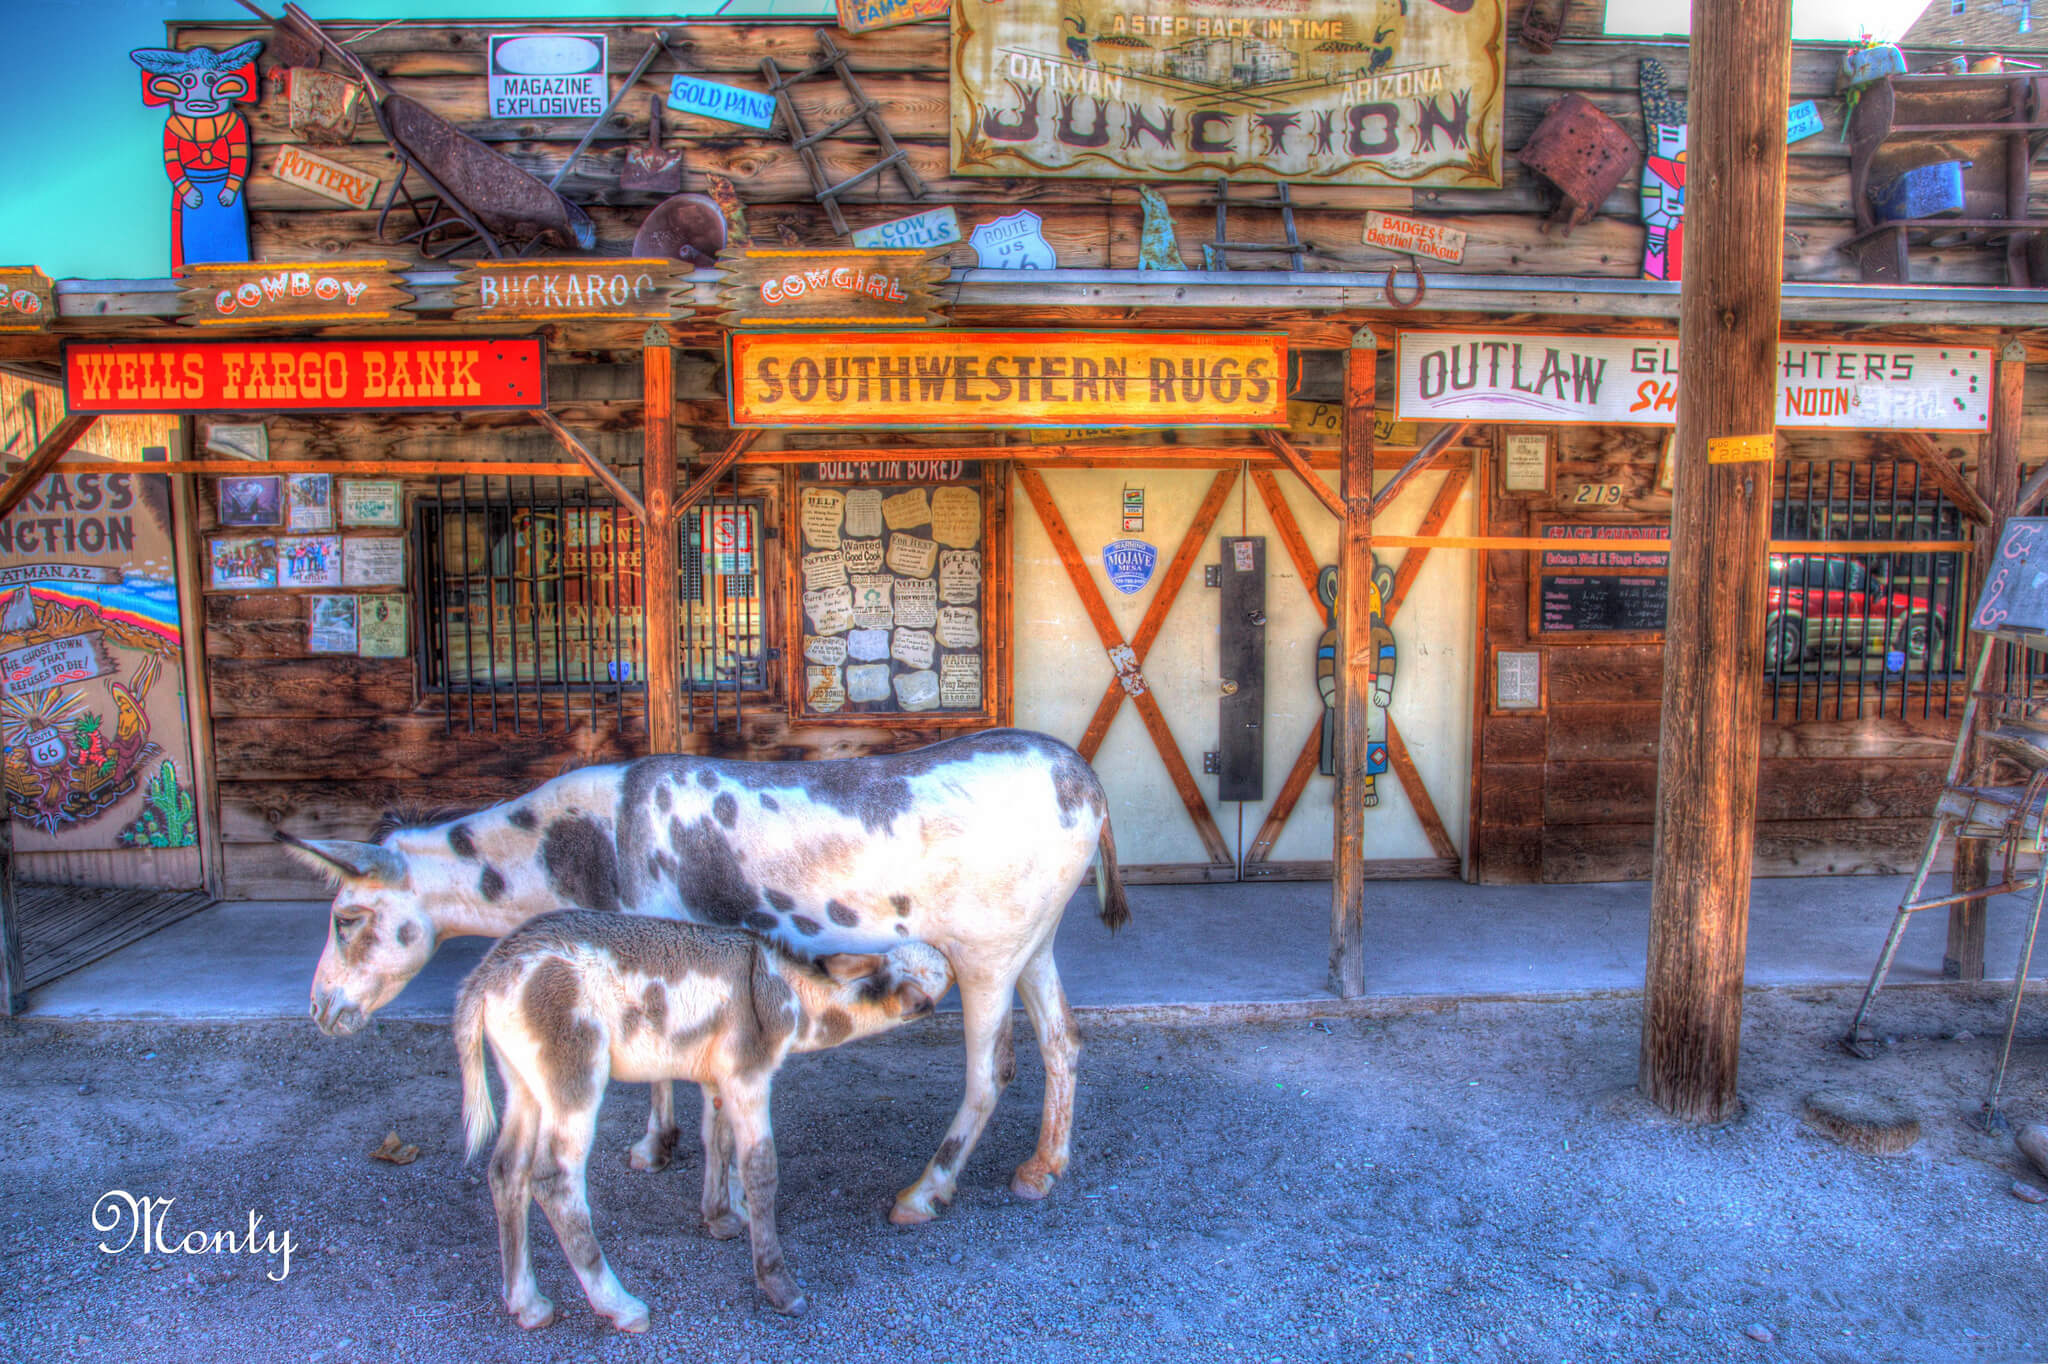 5 Reasons This Tiny Town in Arizona is Worth The Visit